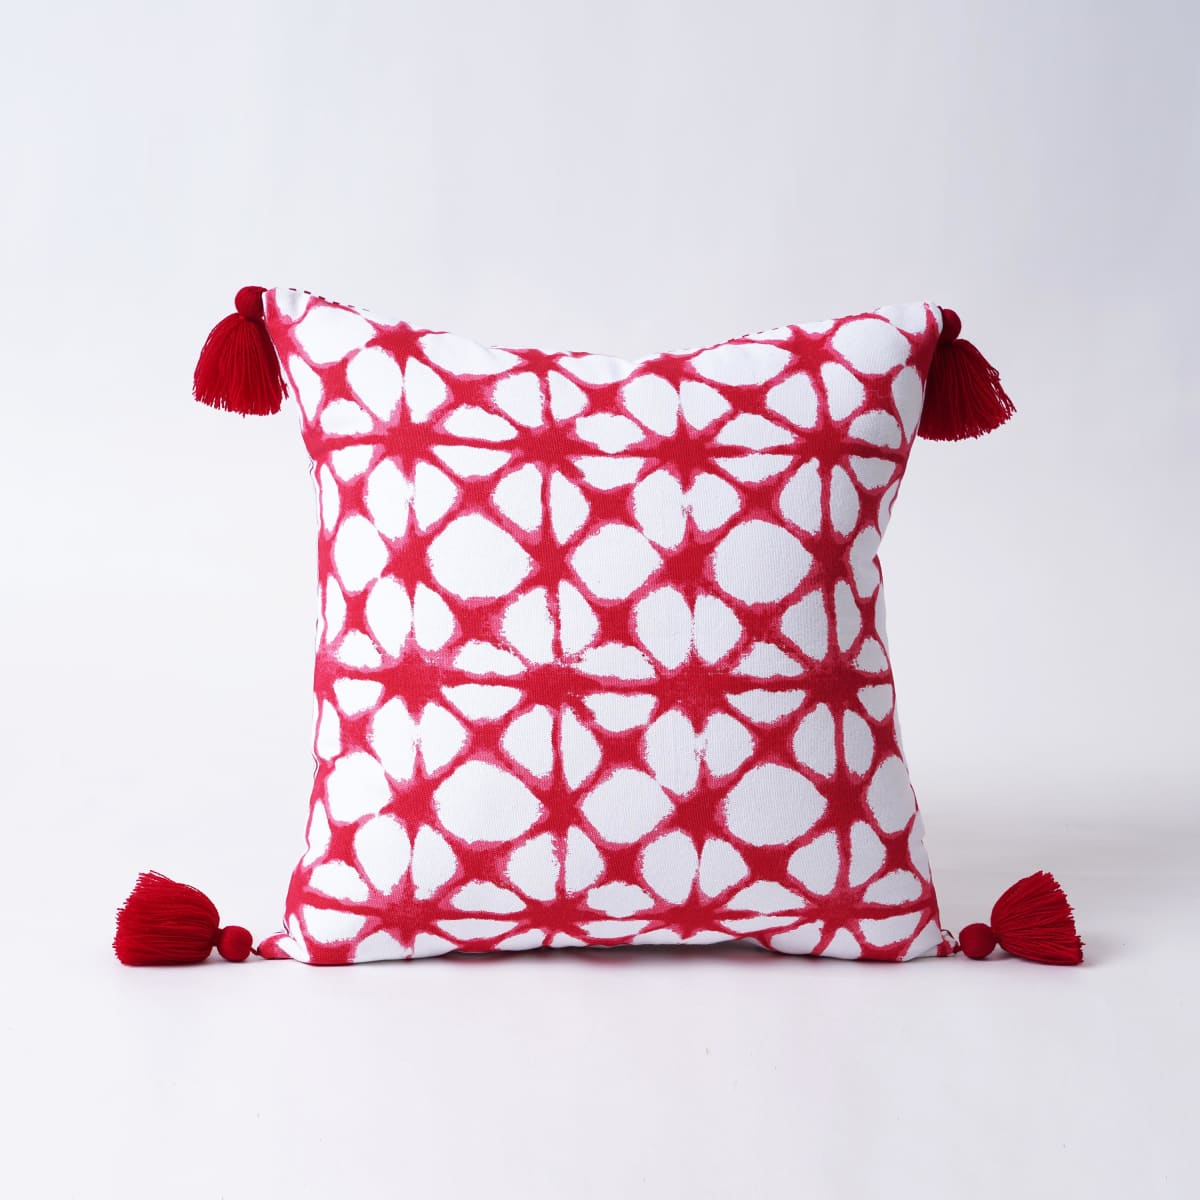 Christmas pillow cover Tie dye pattern Red and white Various size available - 16 X by VLiving